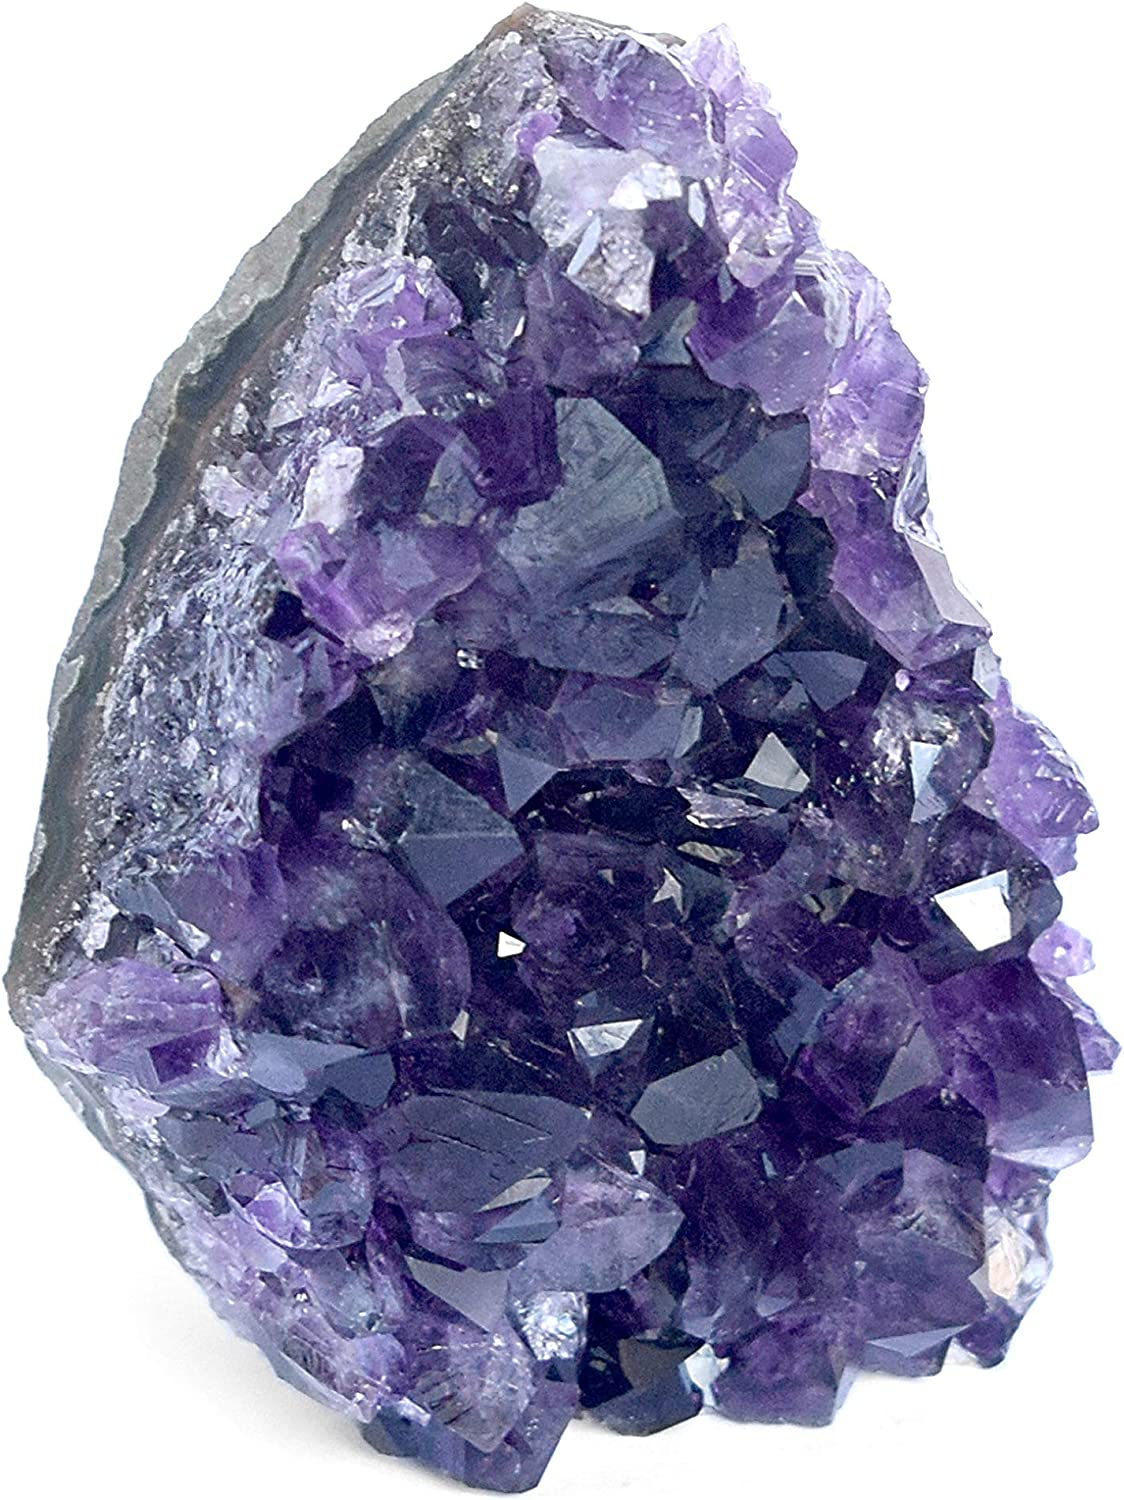 Deep Purple Project Large Amethyst Geode Crystal from Uruguay 1.5 to 2 Lb Includes Gift Box for Stone Lovers (1.5 to 2 Lb.)